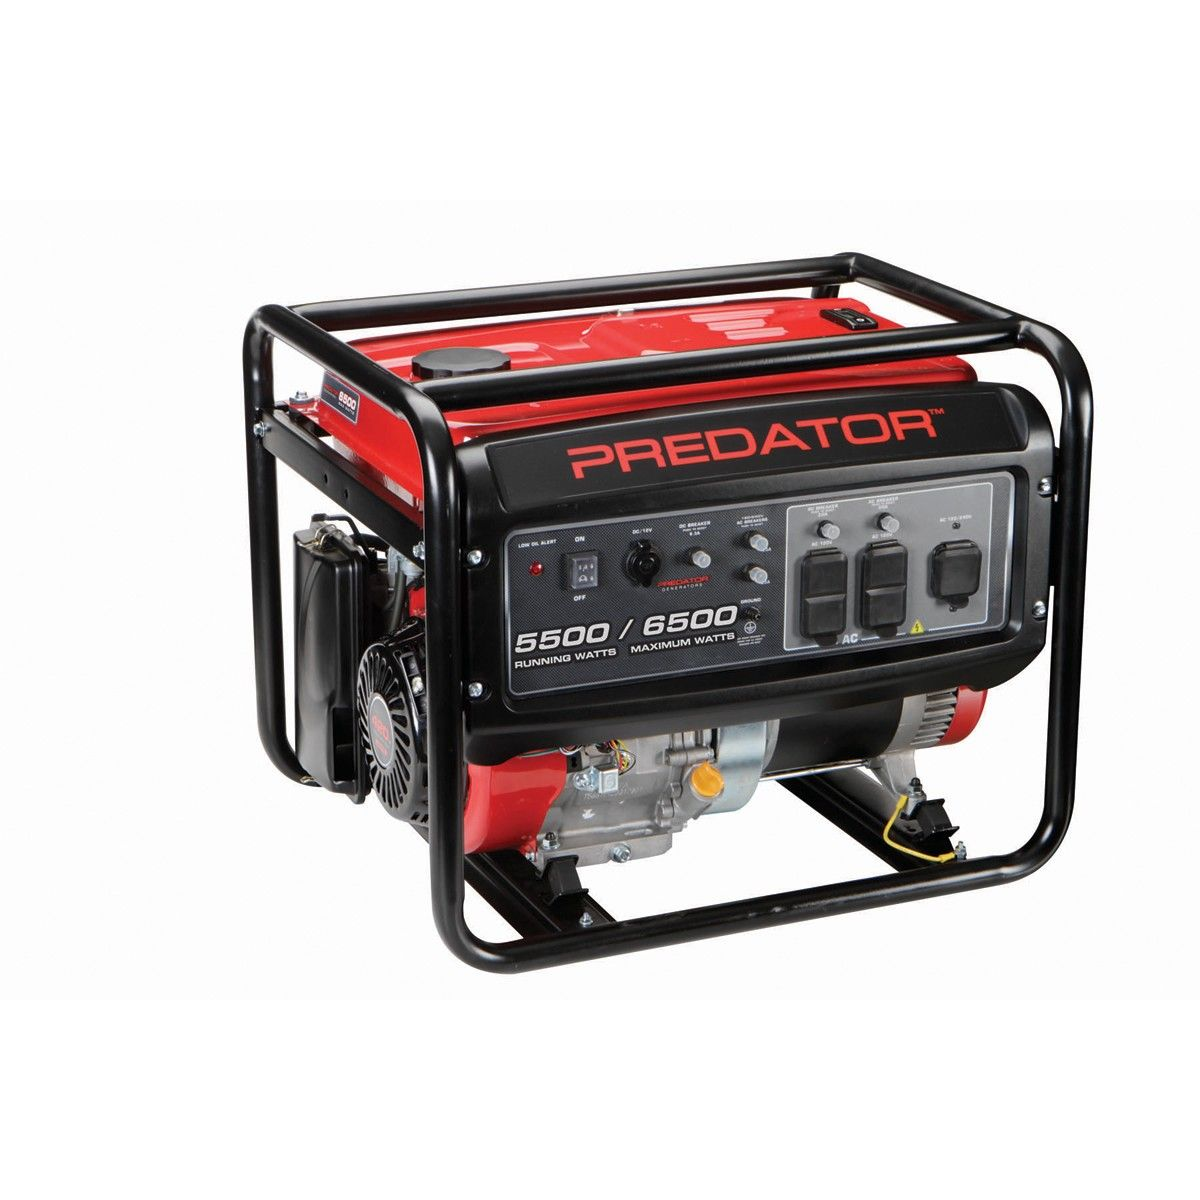 Predator Generators 68529 420cc 6500 Watts Max 5500 Watts Rated Portable Generator Gas Generator Gas Powered Generator Generation